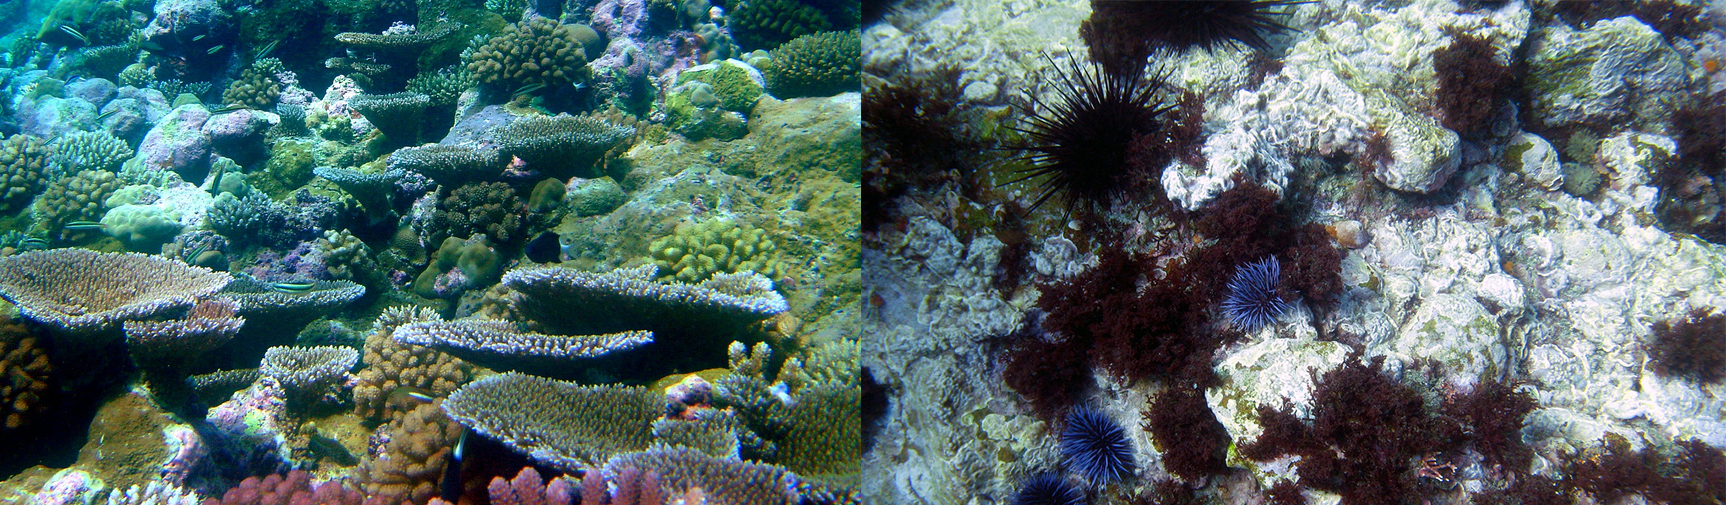 Regime shifts in coral reefs typically involve a change in species dominance from hard corals to algal dominance. They also include shifts from hard corals to urchin barrens , pictured here. These regime shifts result in loss of diversity and structural complexity, and are typically triggered by a combination overfishing, pollution, diseases and climate change. Images have been cropped to fit. Left: NOAA/flickr. Right: Travis/flickr